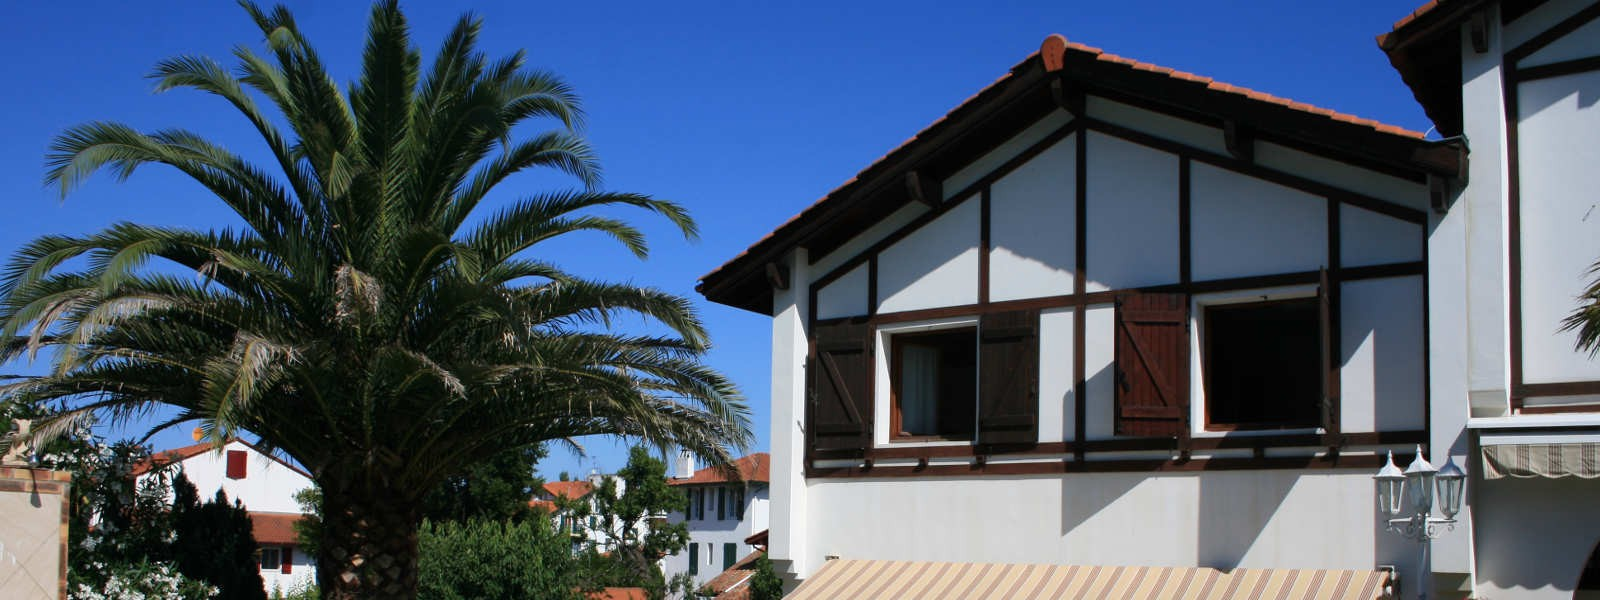 2 appartements dans une maison basque face à la piscine